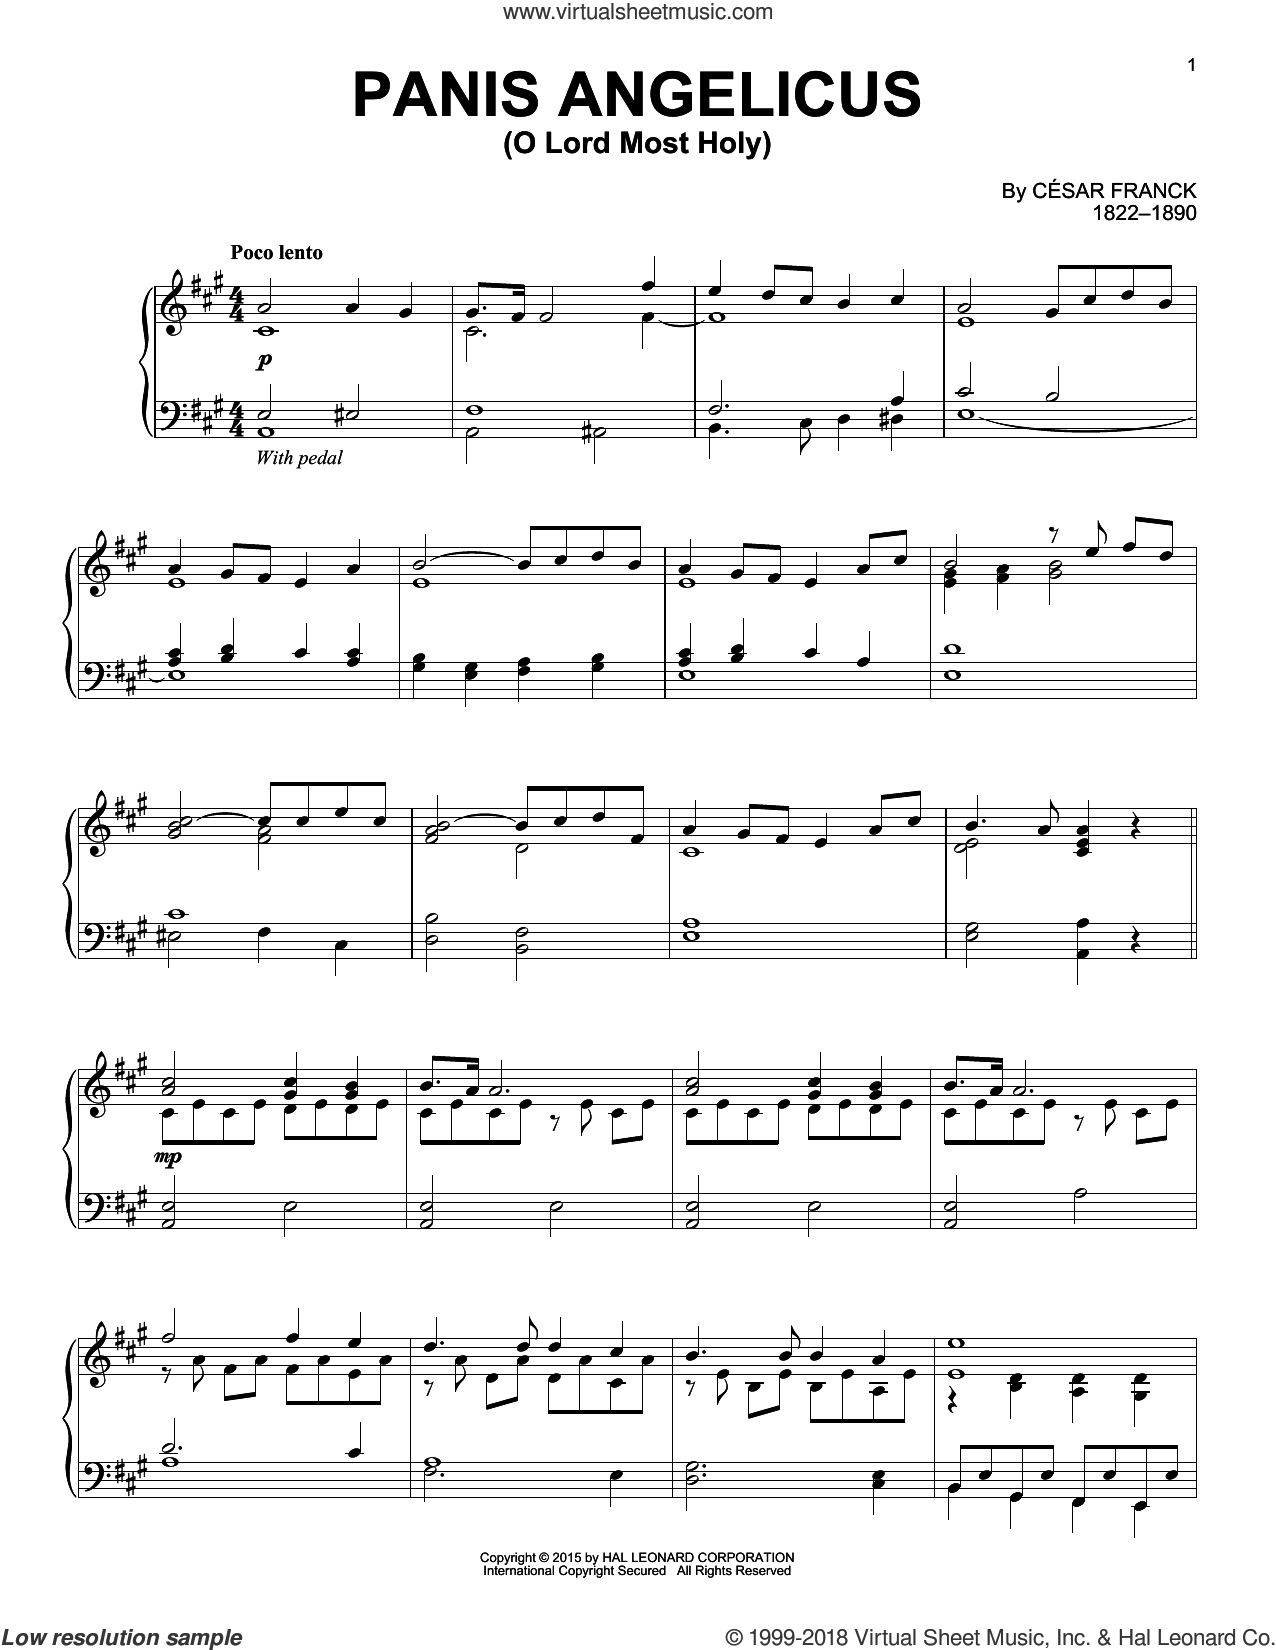 Panis Angelicus (O Lord Most Holy) sheet music for piano solo by César Franck and Cesar Franck. Score Image Preview.